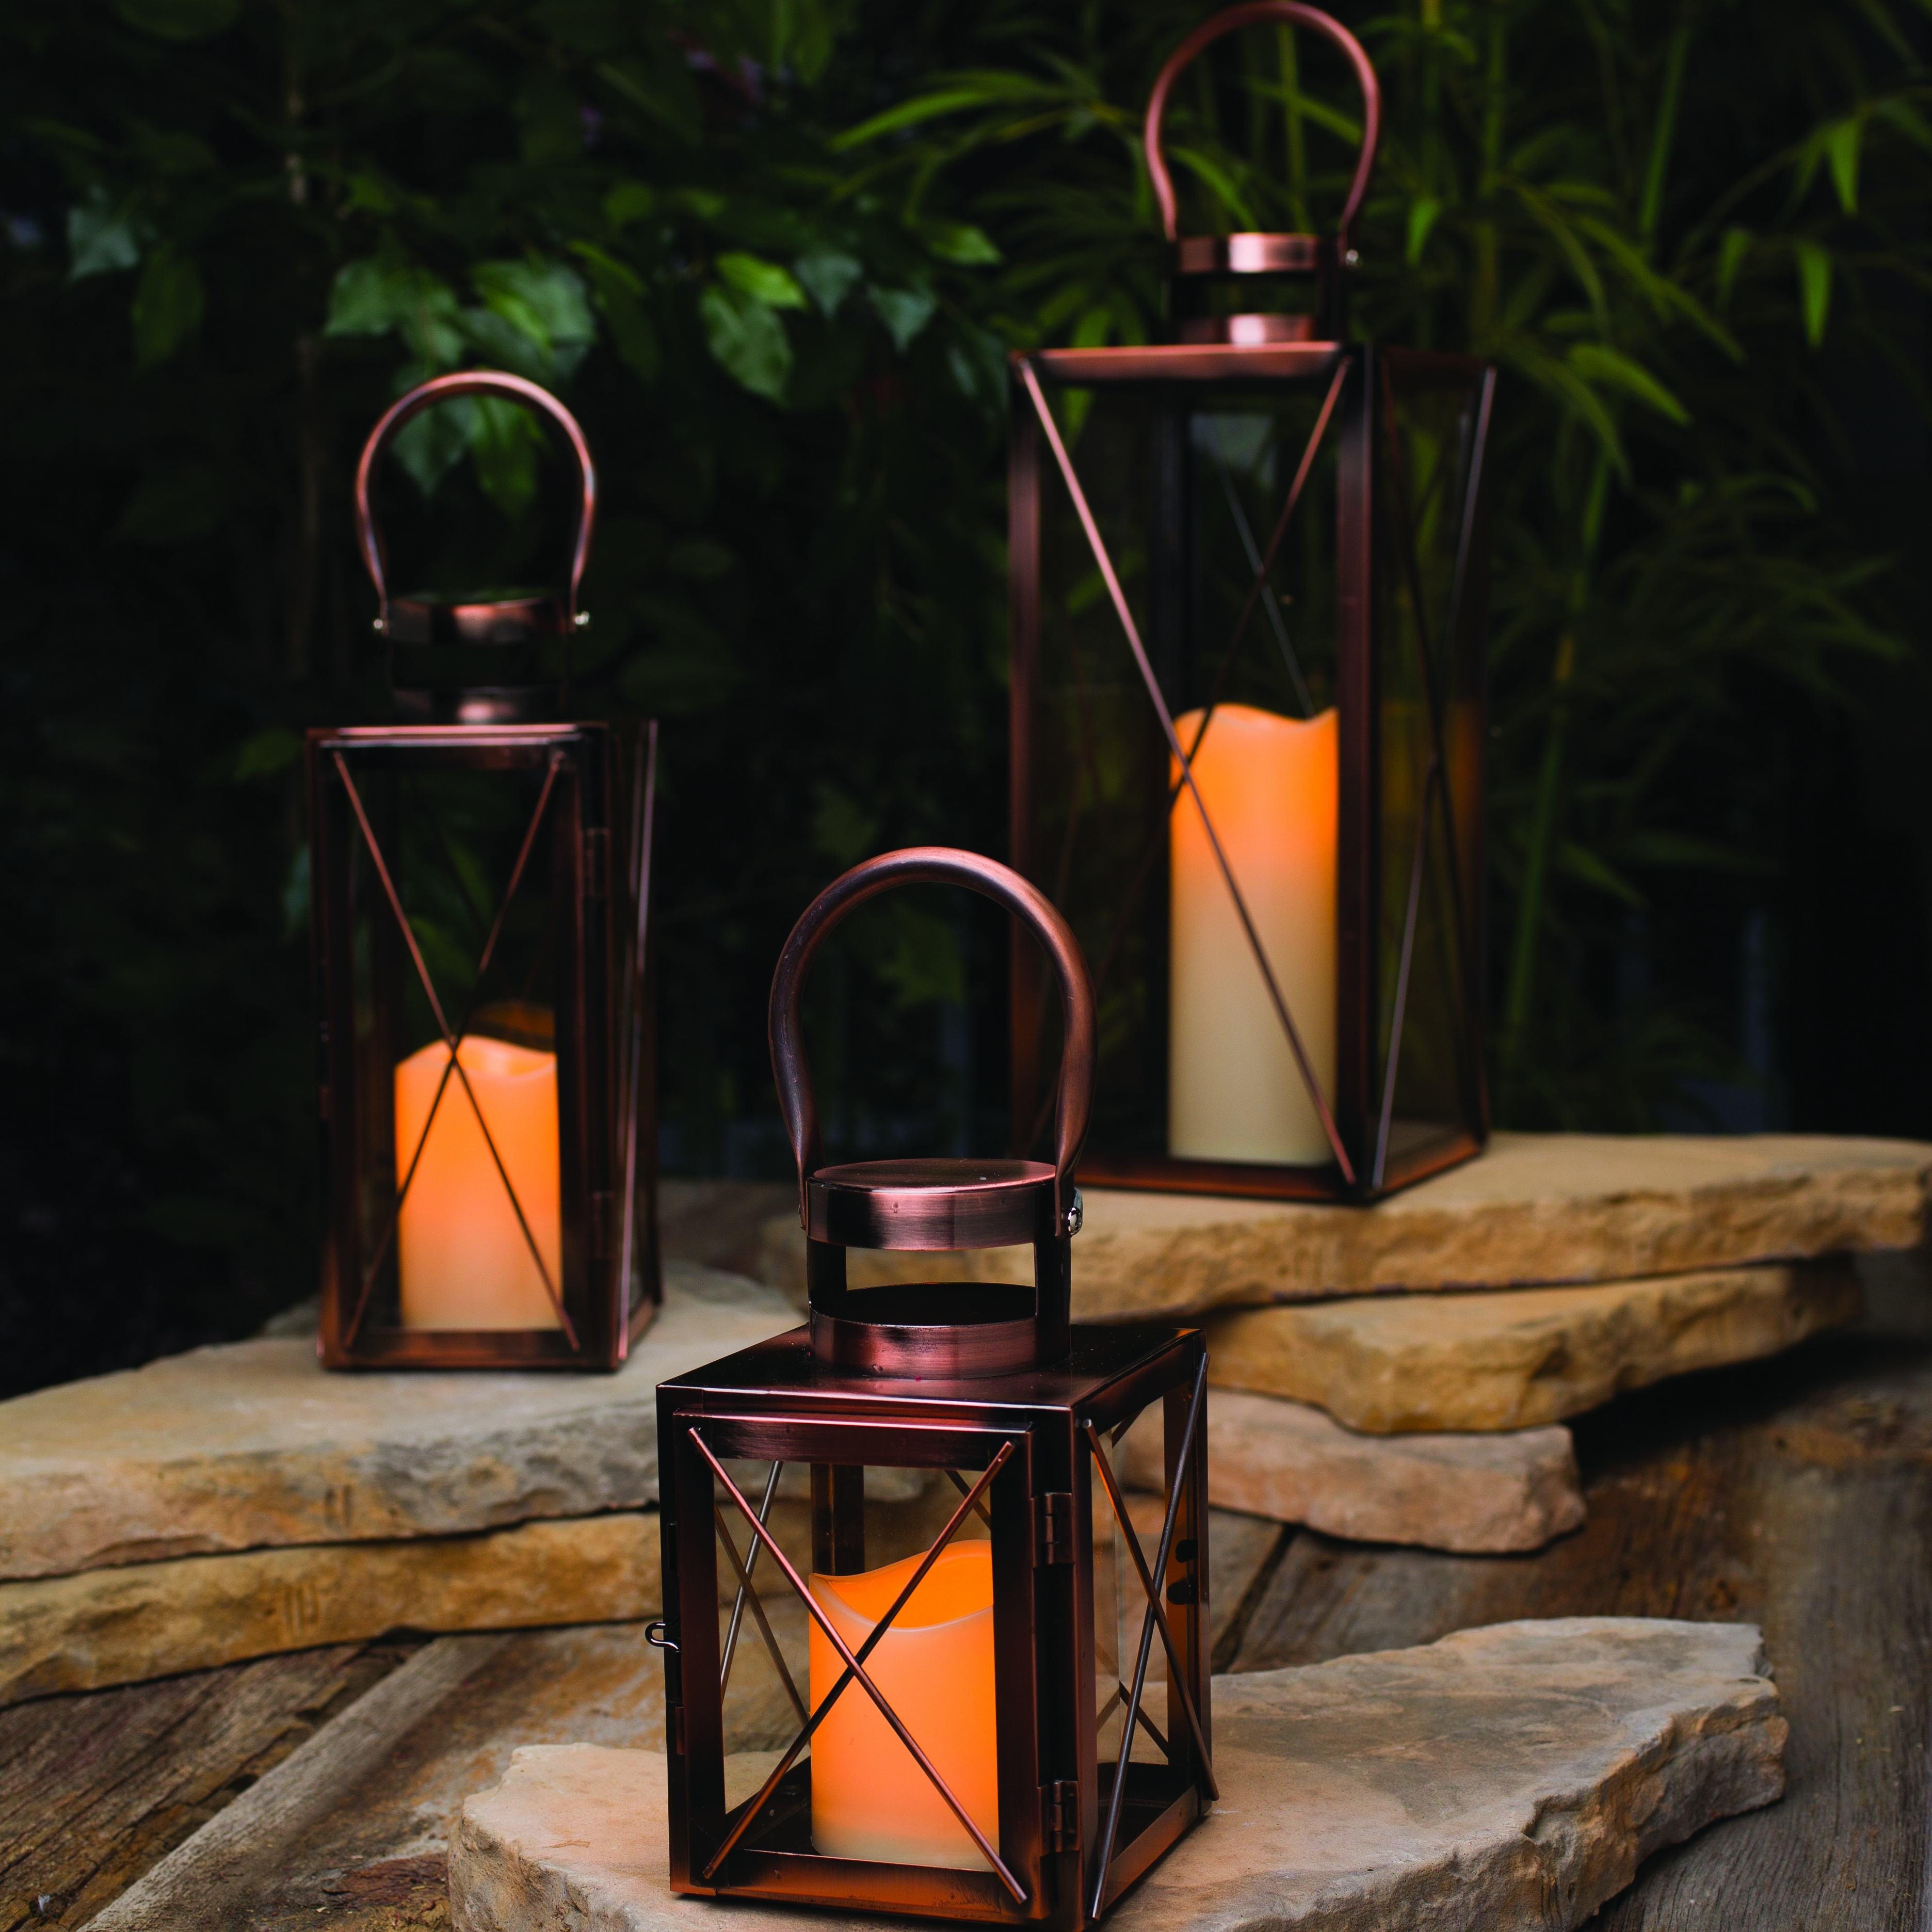 Outdoor Hanging Japanese Lanterns Intended For Current Outdoor Candles Lanterns And Lighting (View 15 of 20)